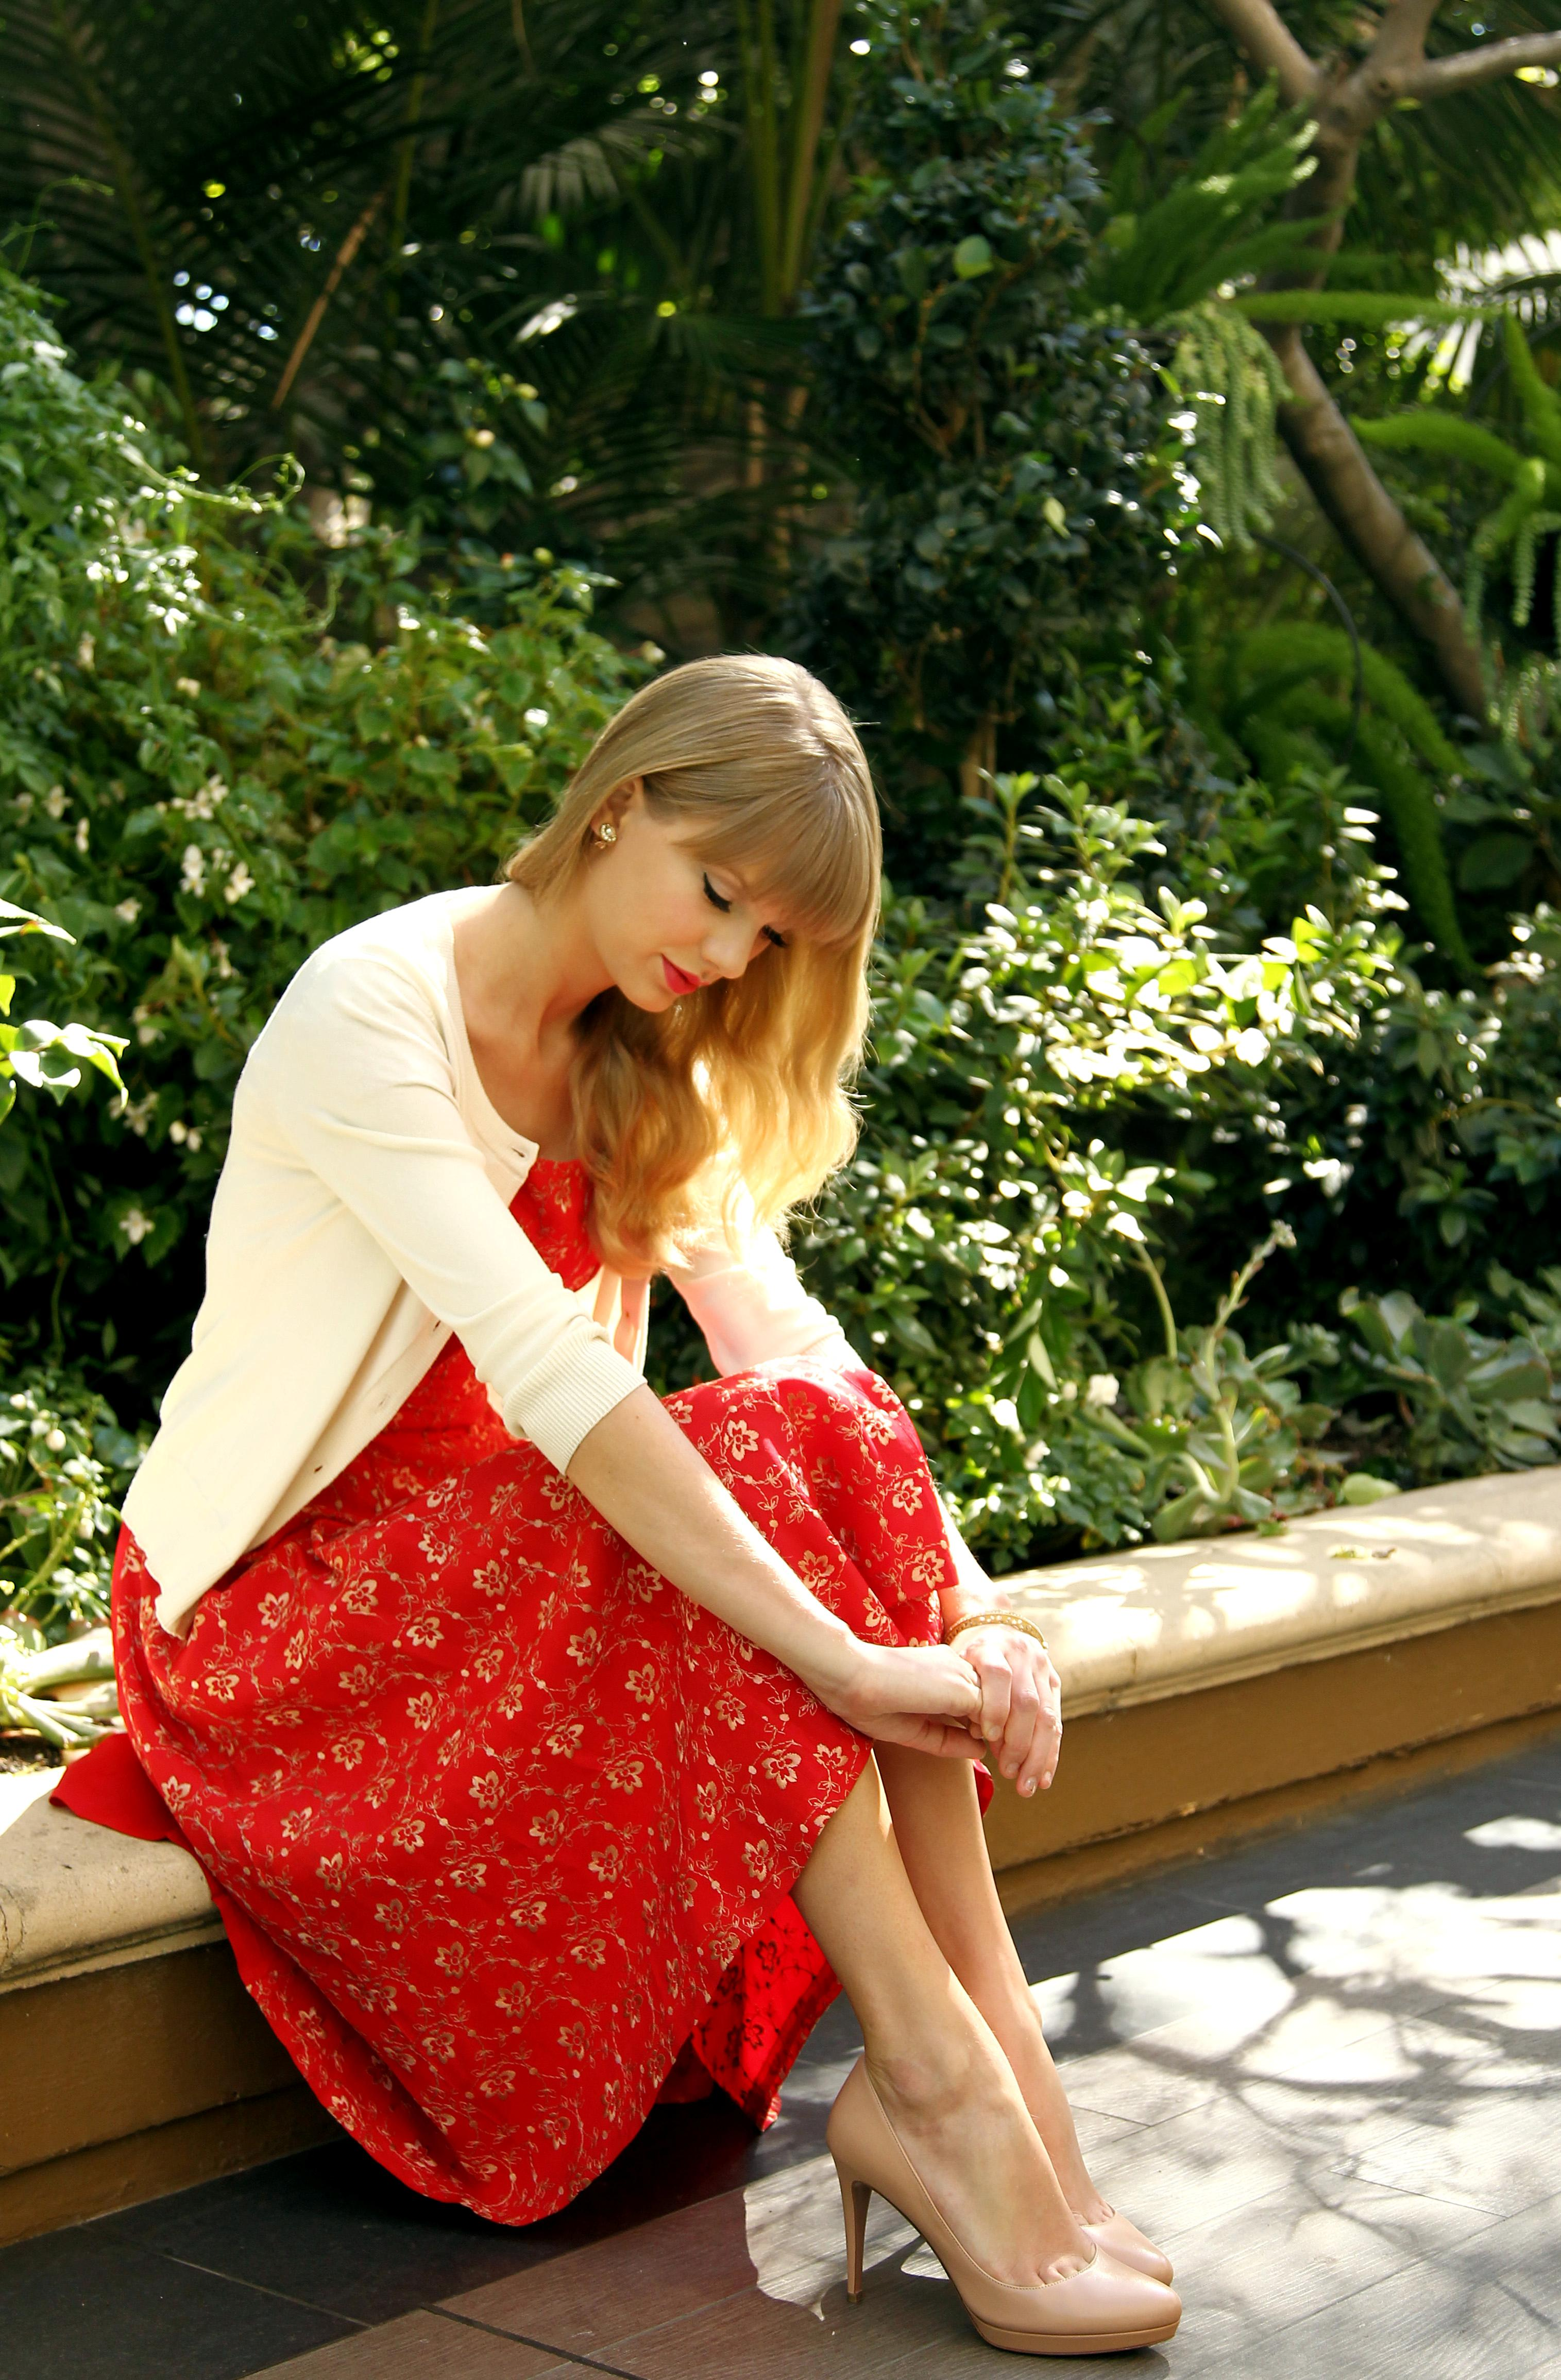 Taylor Swift Taylor Picture Thread 17 Because We Are Getting Spoiled With All These New Pics Next Stop Red Photoshoot Please Page 18 Fan Forum